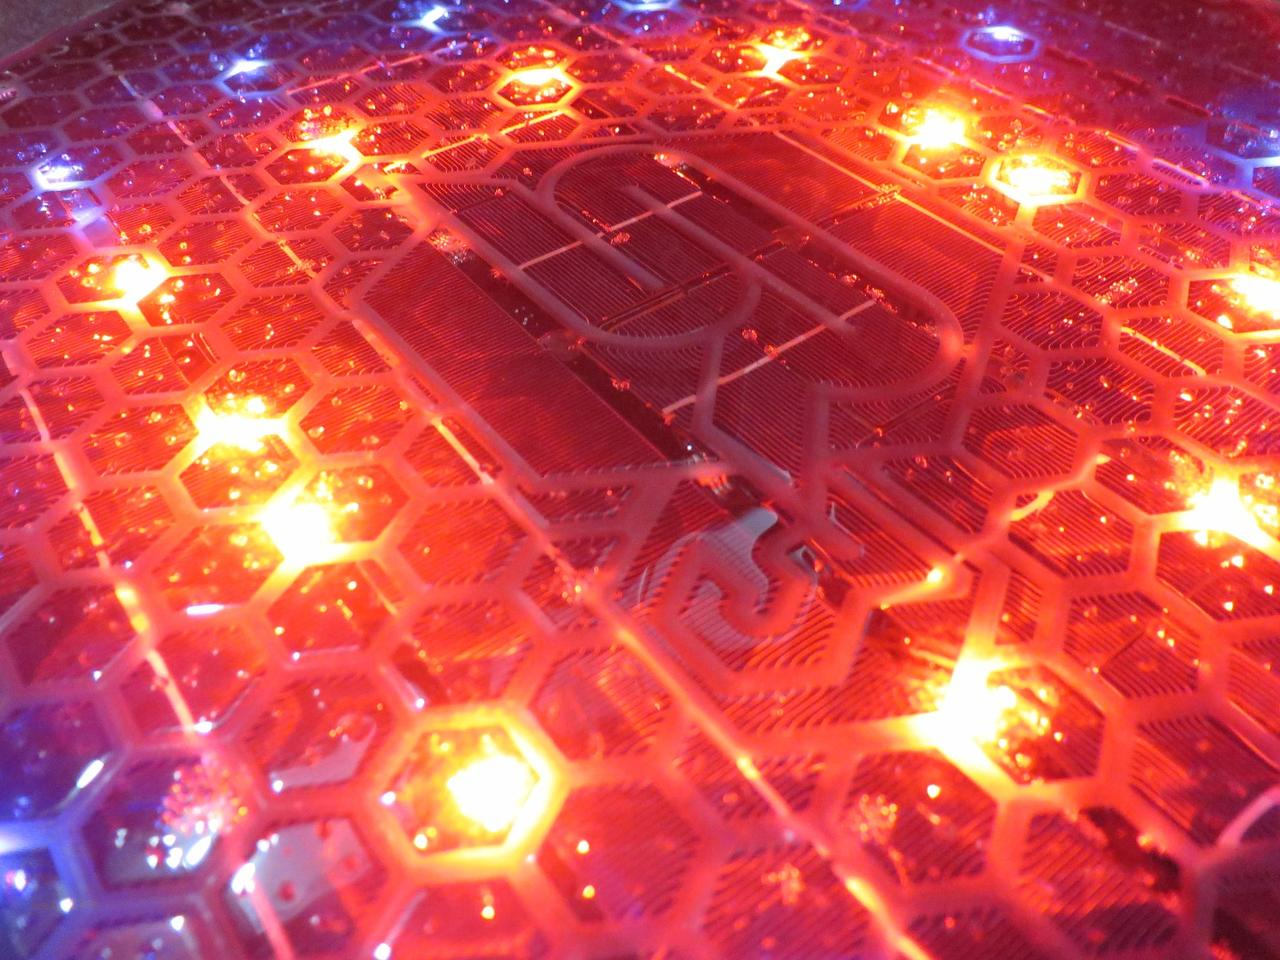 The Solar Roadways third generation prototypes sport over 300 LEDs with more than 16 million available colors